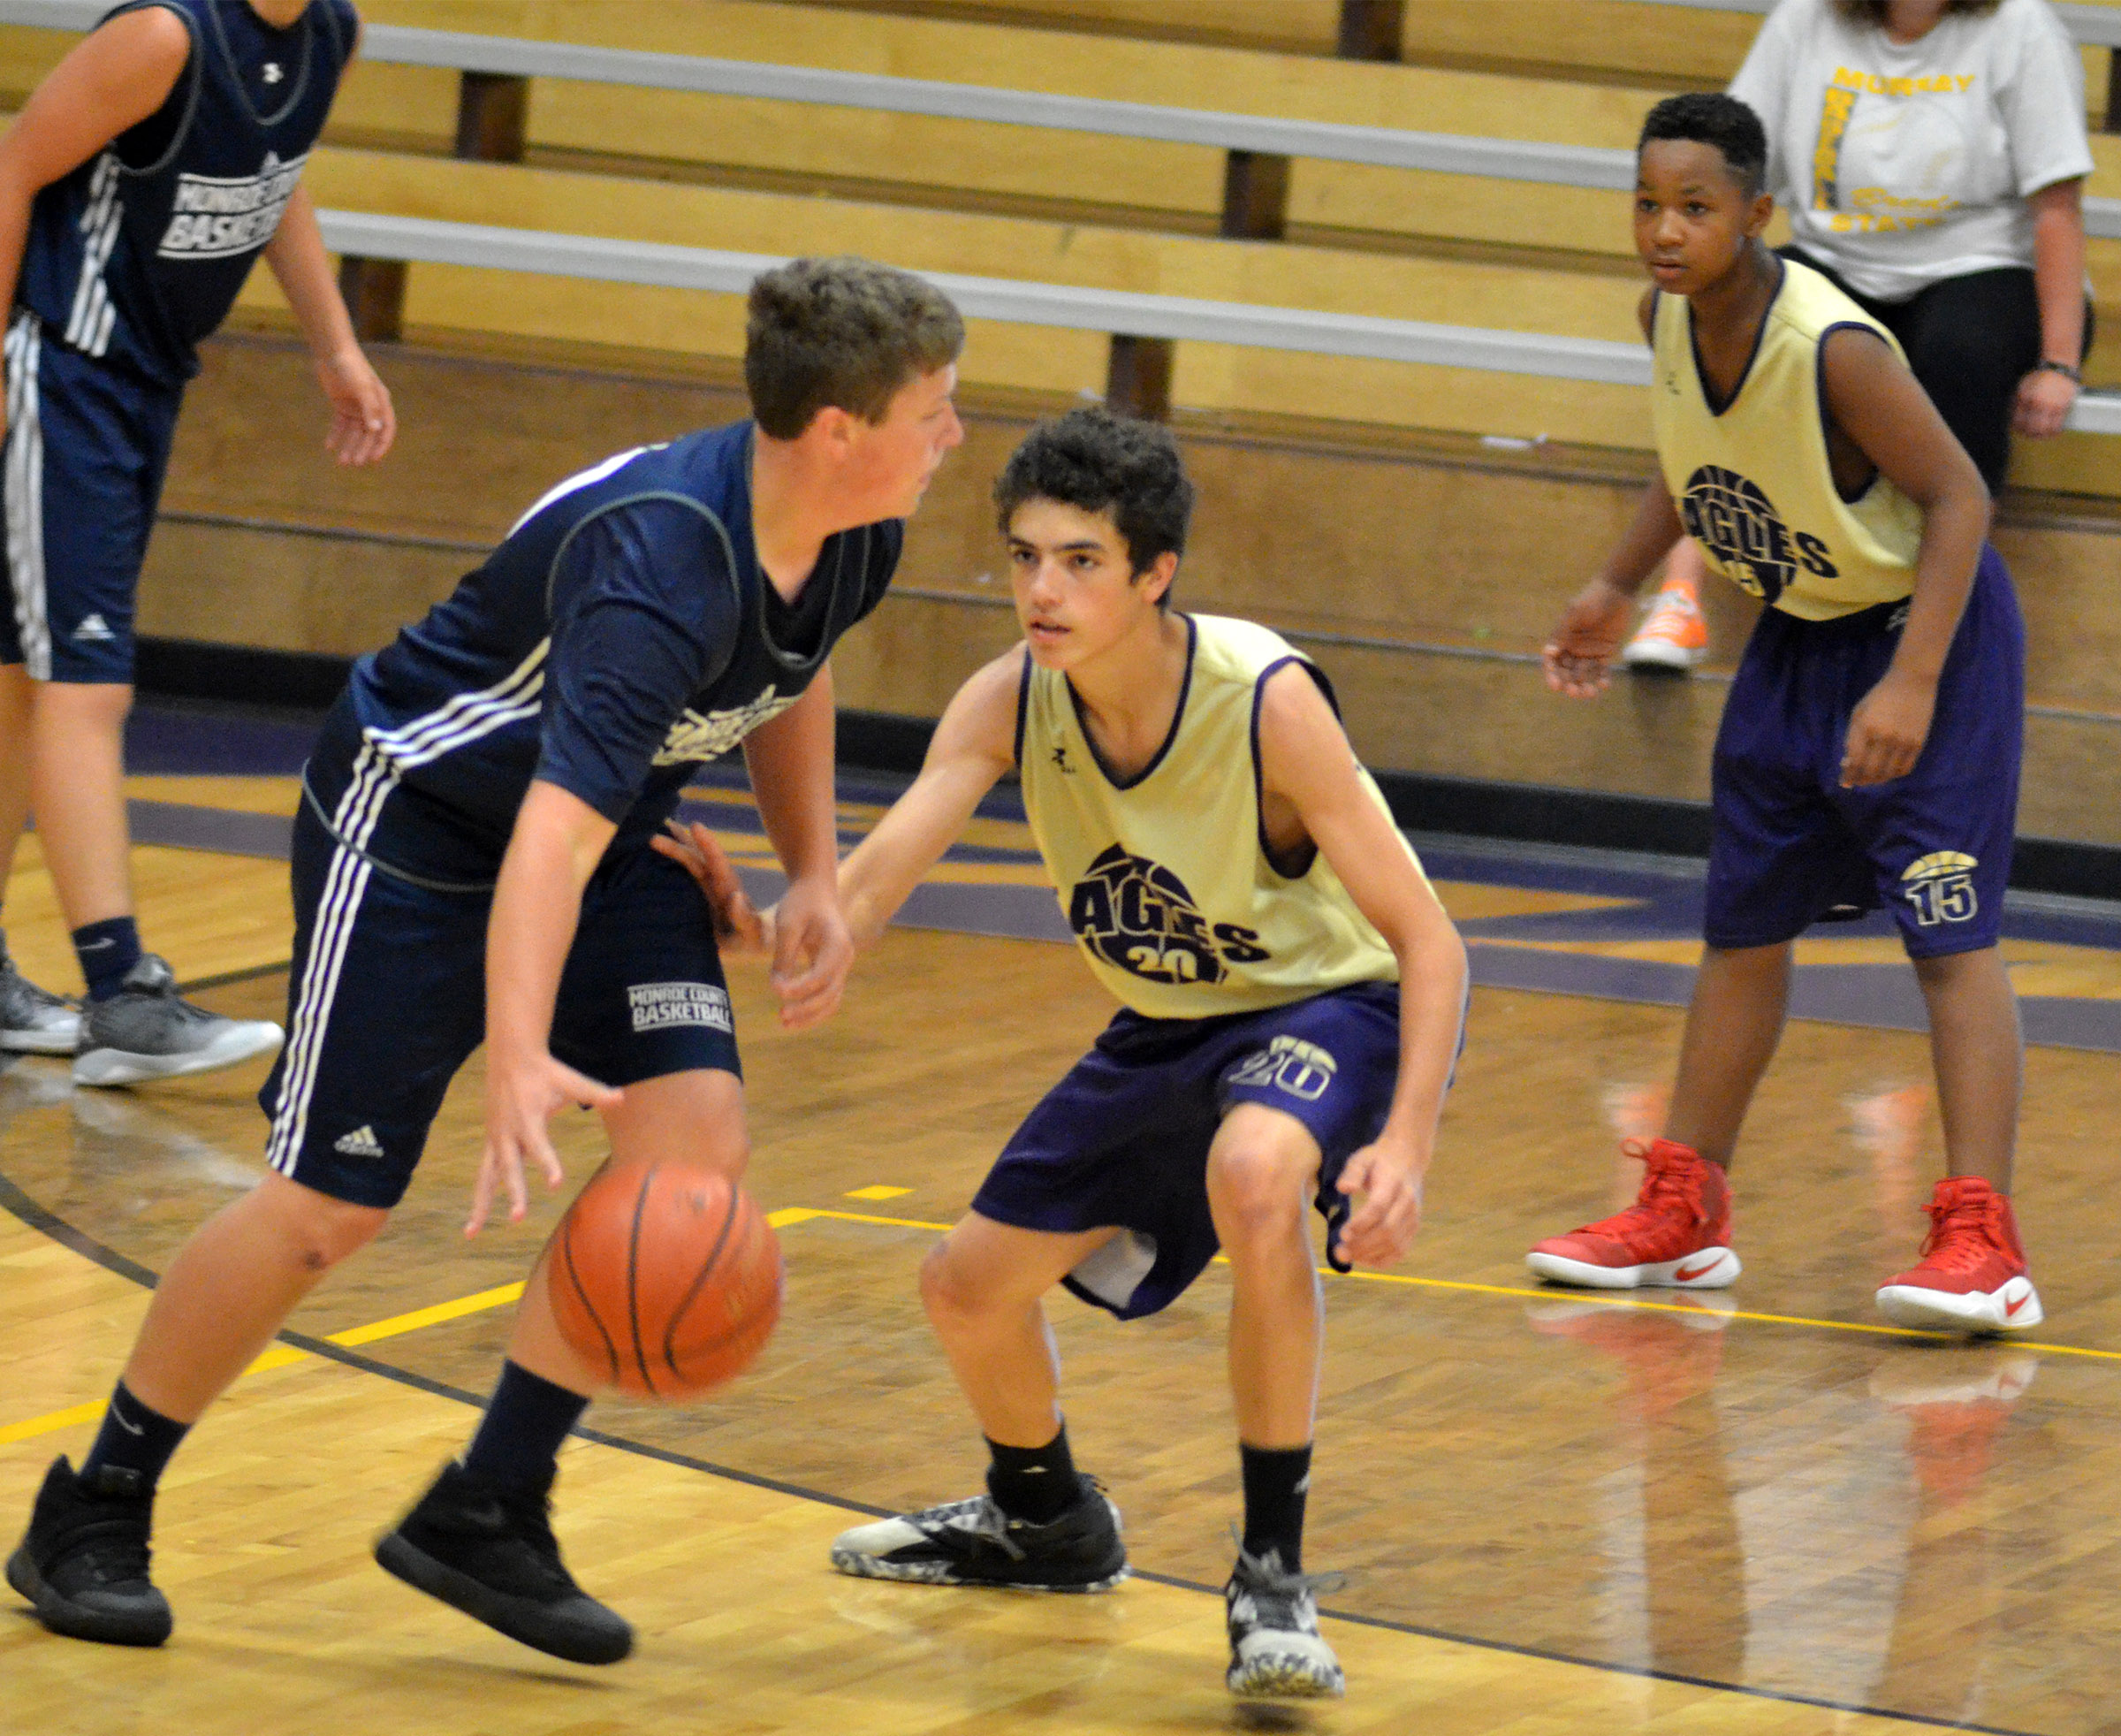 CHS freshman Kameron Smith plays defense.